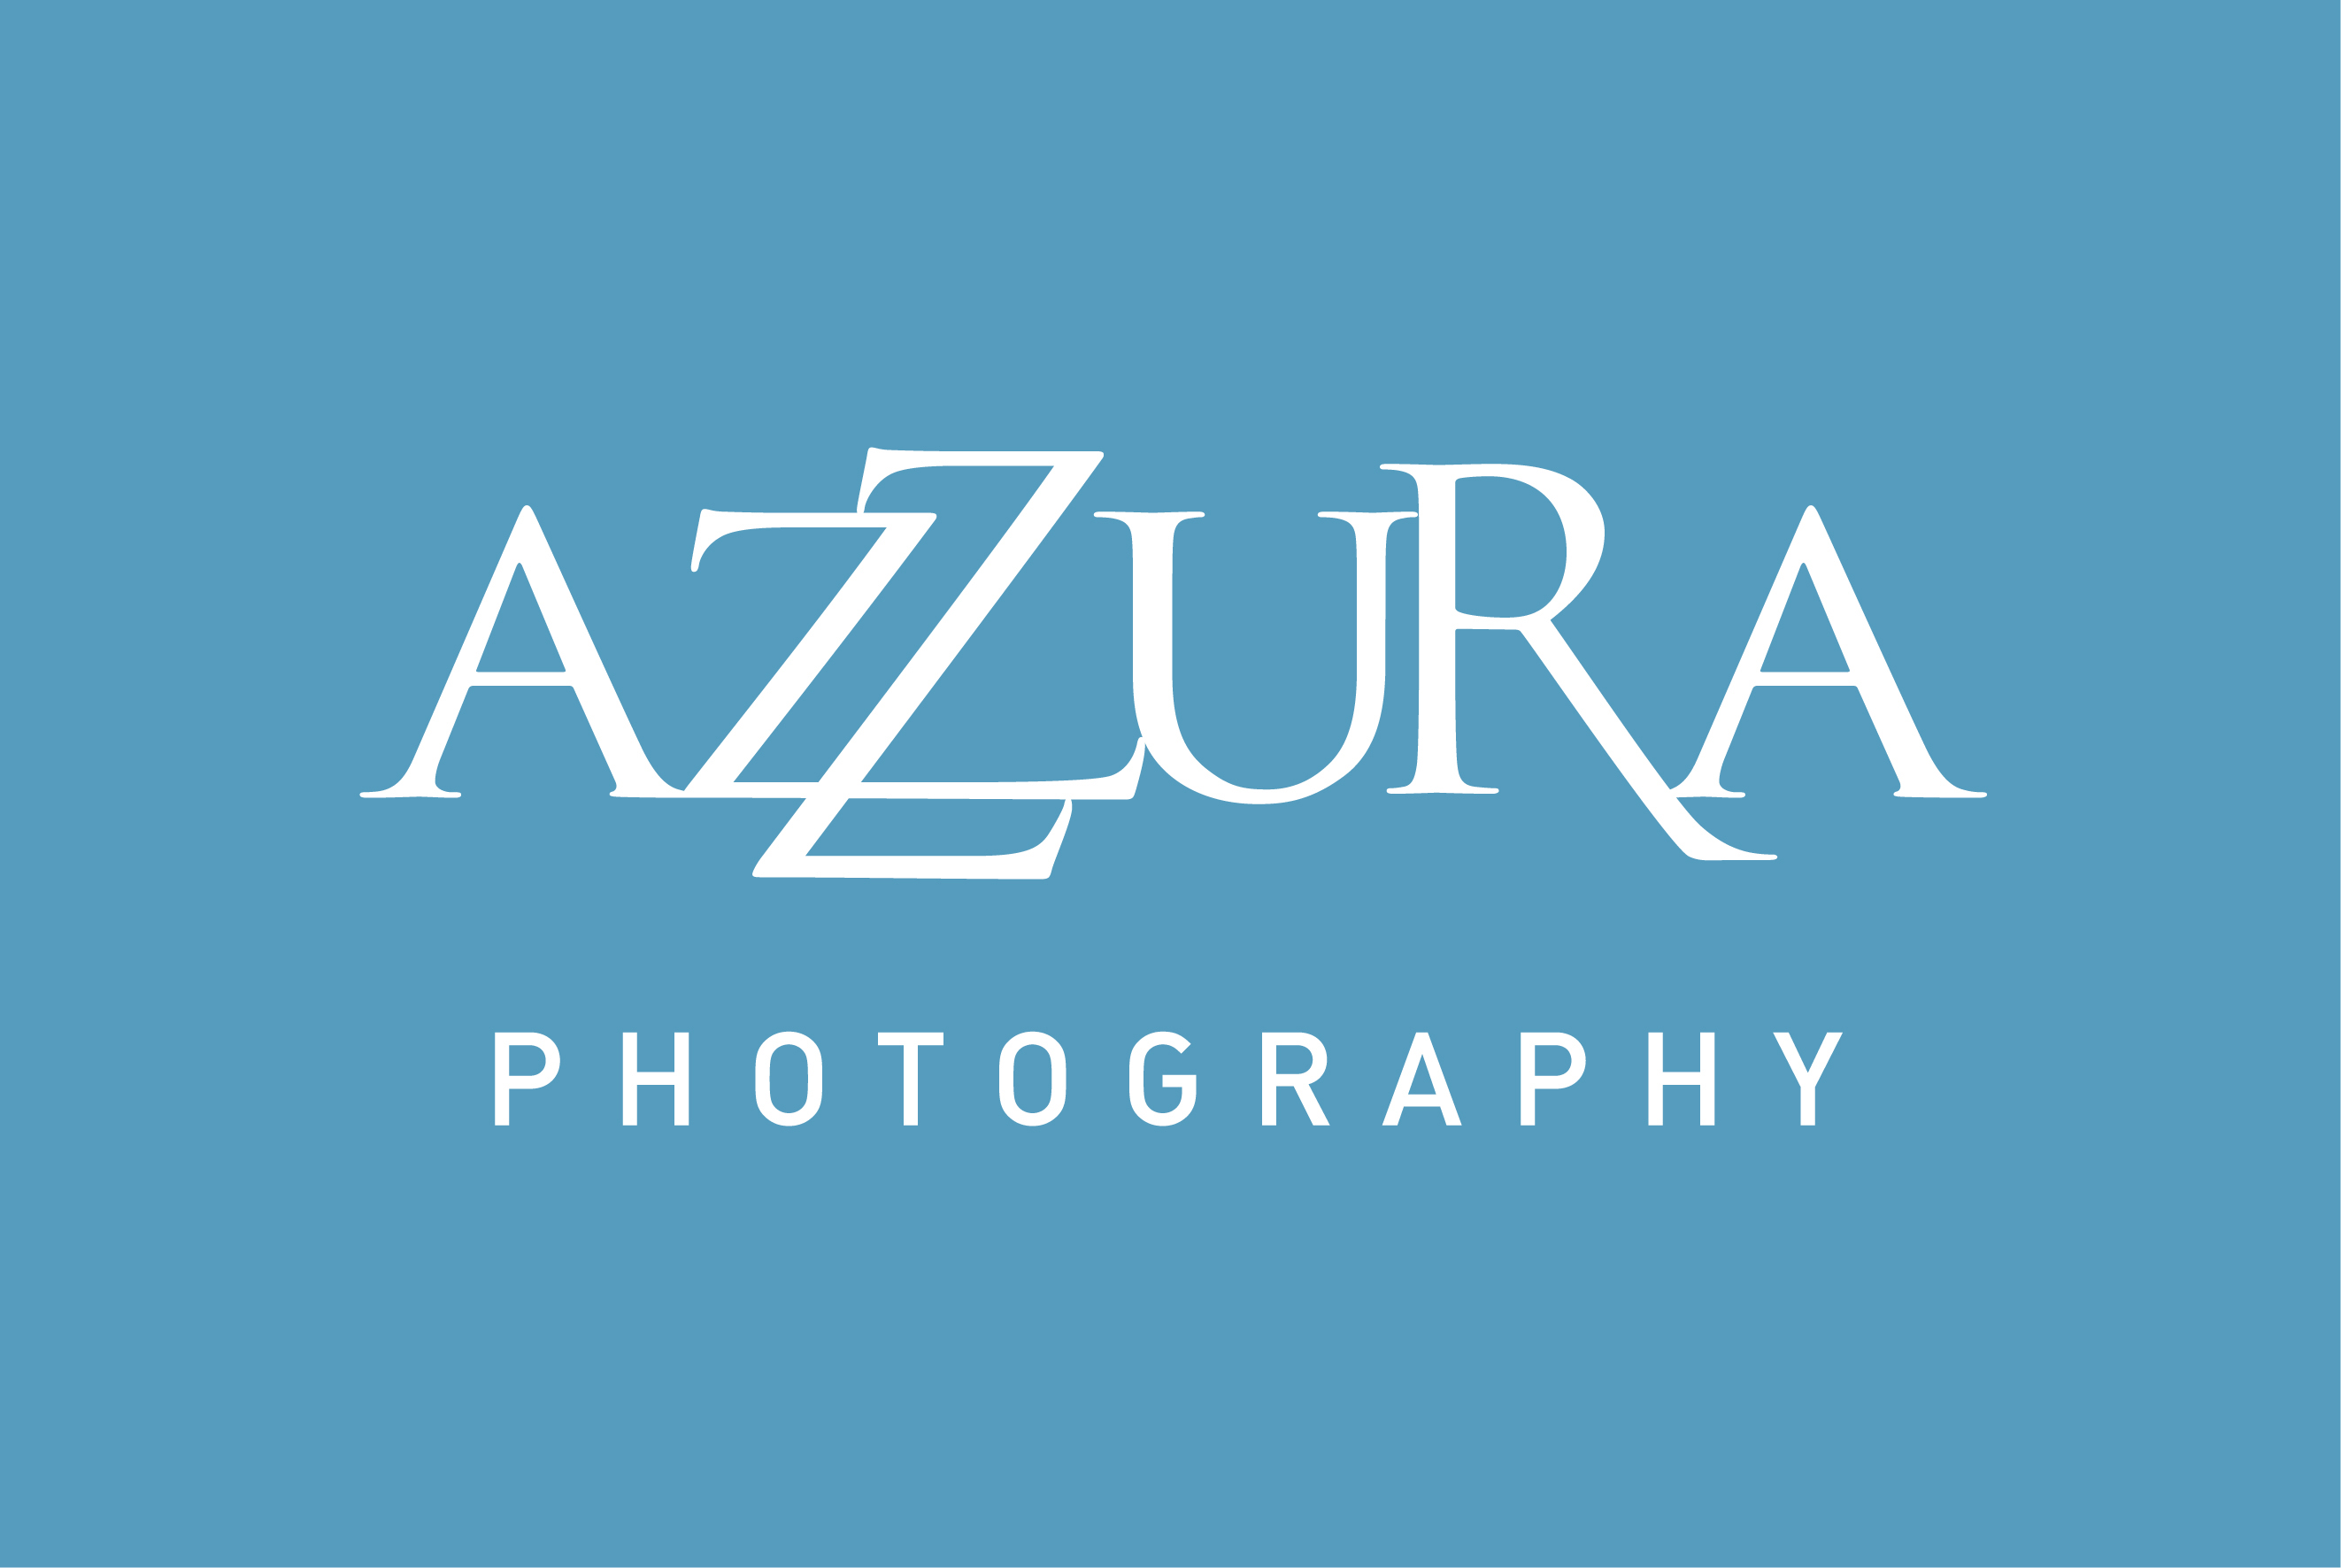 Azzura Photography